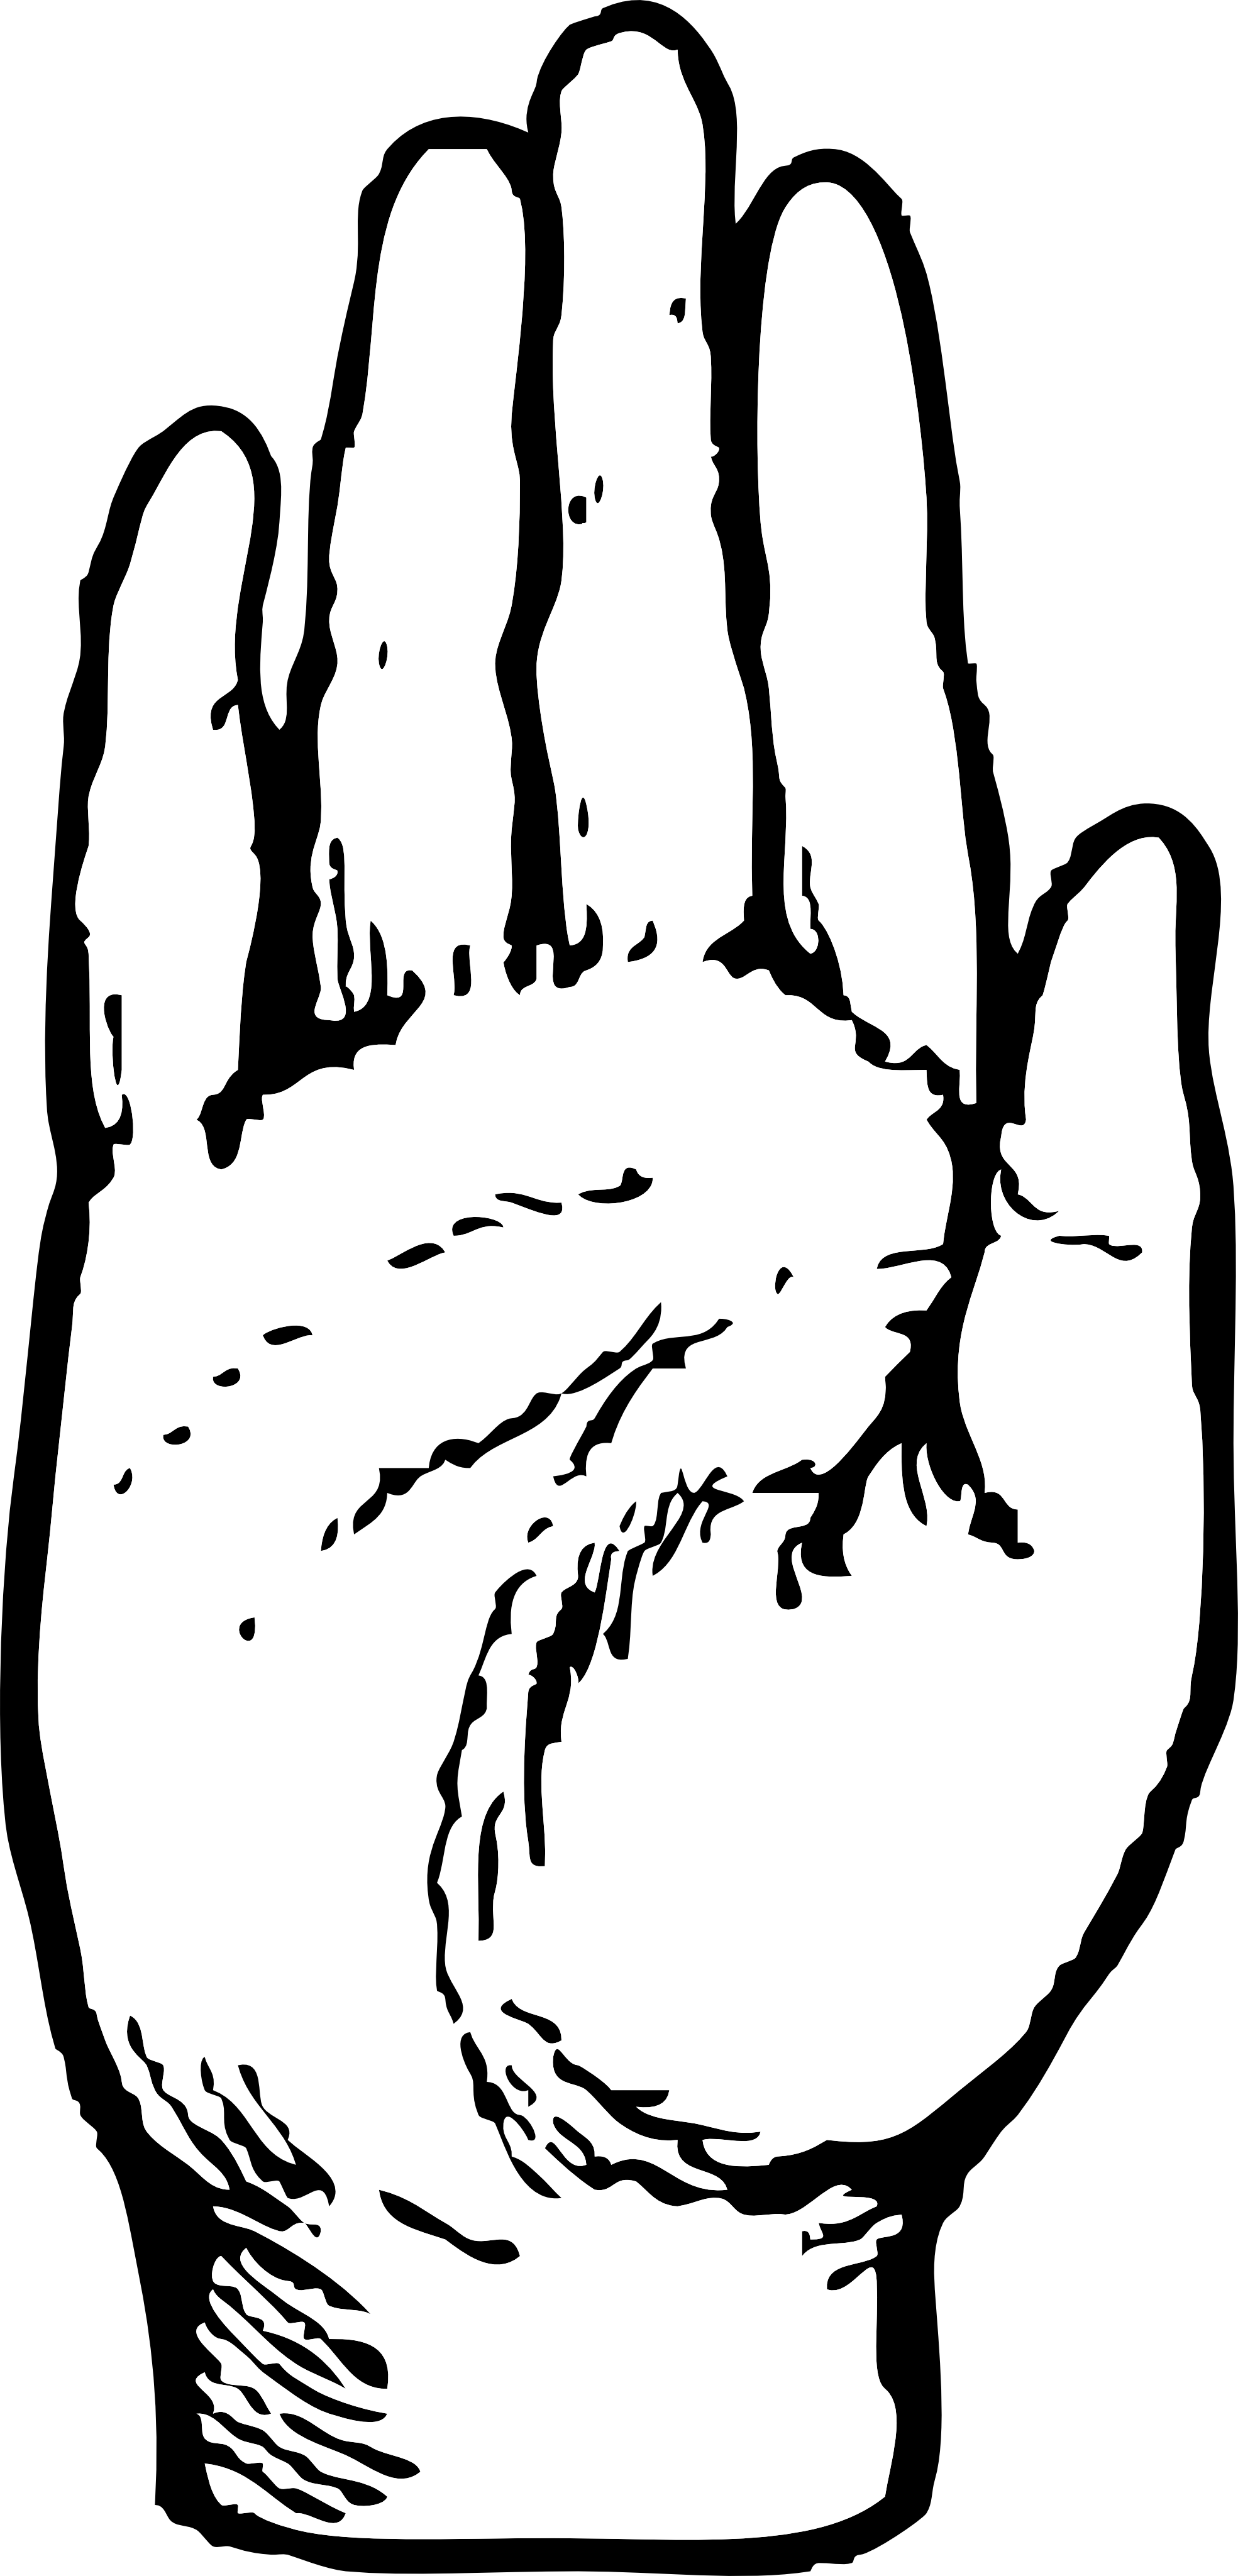 Lines clipart hand Cliparts Of Right Art Hand